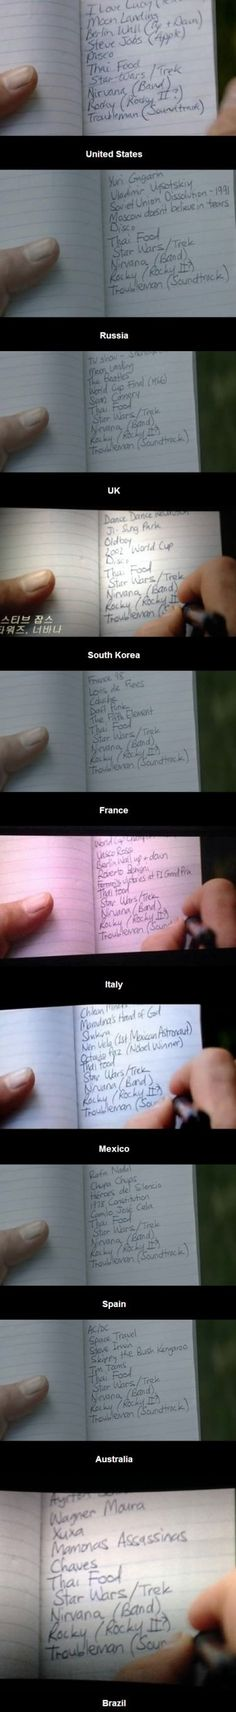 Captain America's list in the Winter Soldier for different countries